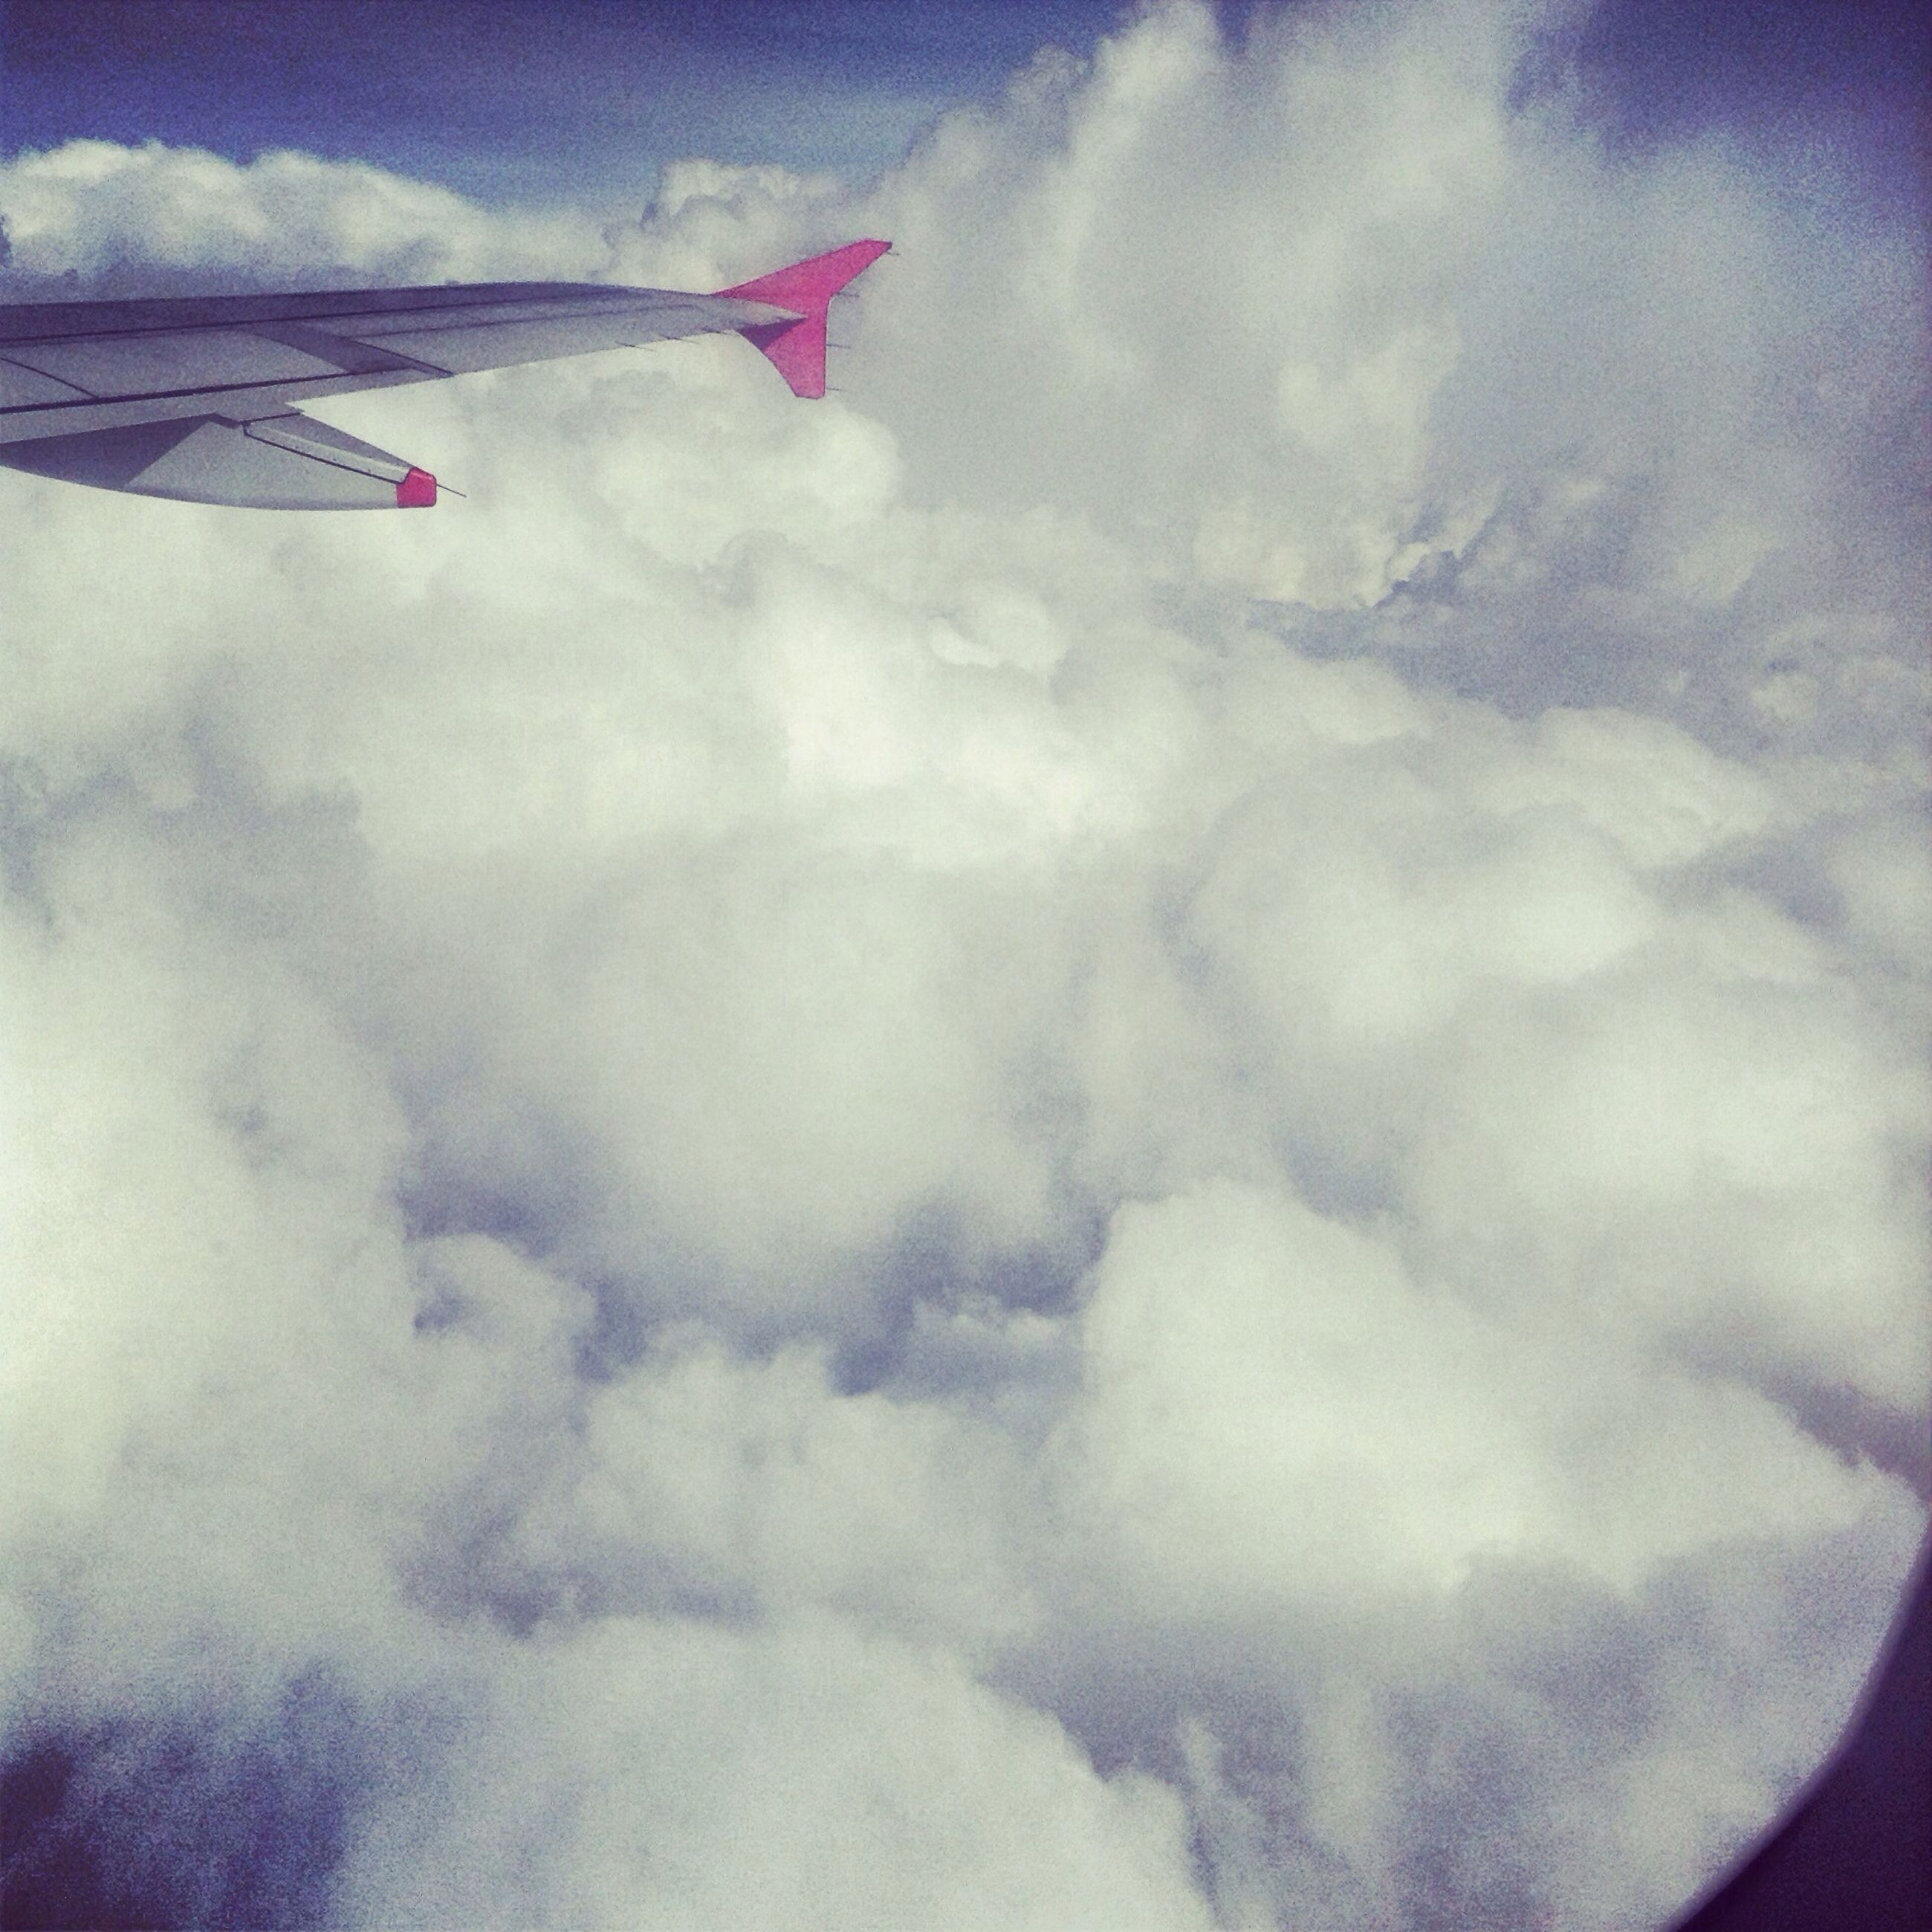 transportation, airplane, air vehicle, flying, mode of transport, sky, aircraft wing, mid-air, cloud - sky, part of, cropped, low angle view, on the move, day, white color, travel, cloud, nature, no people, outdoors